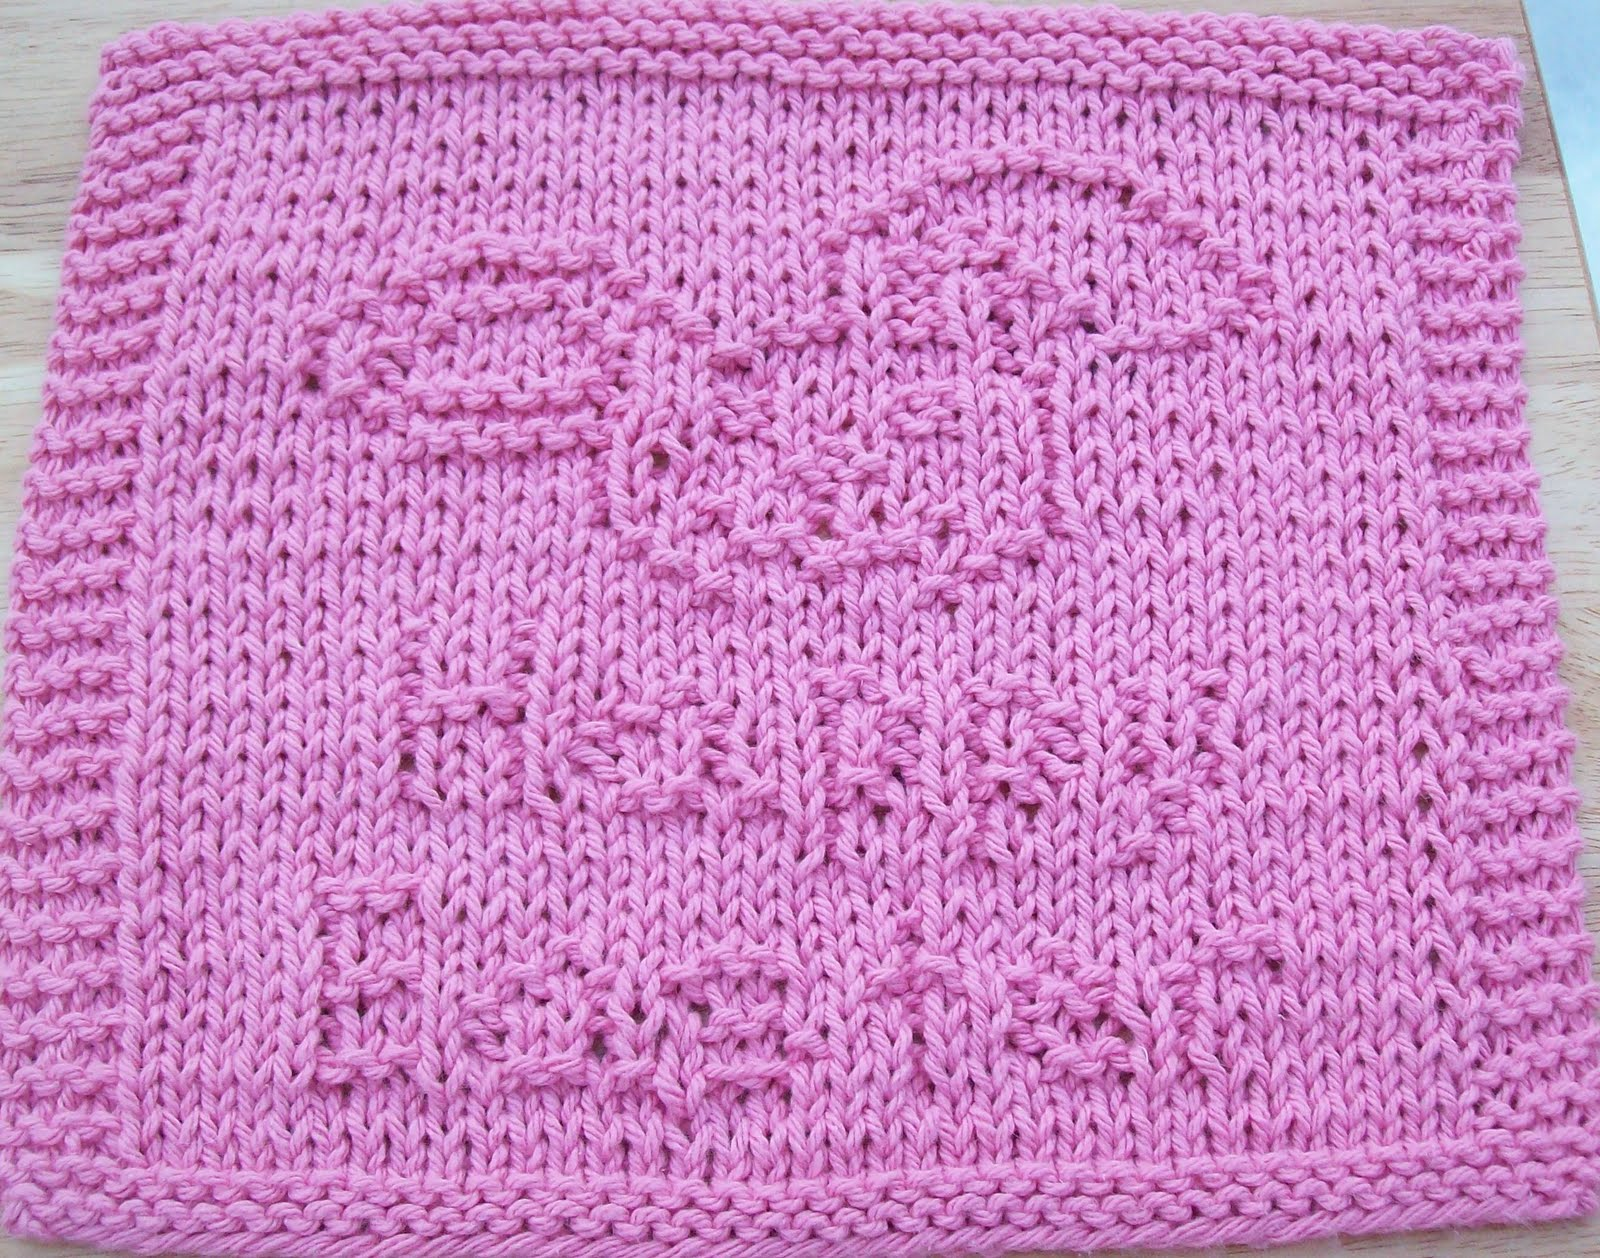 Knitted Dishcloth Patterns For Easter : DigKnitty Designs: Happy Easter Bunny Knit Dishcloth Pattern